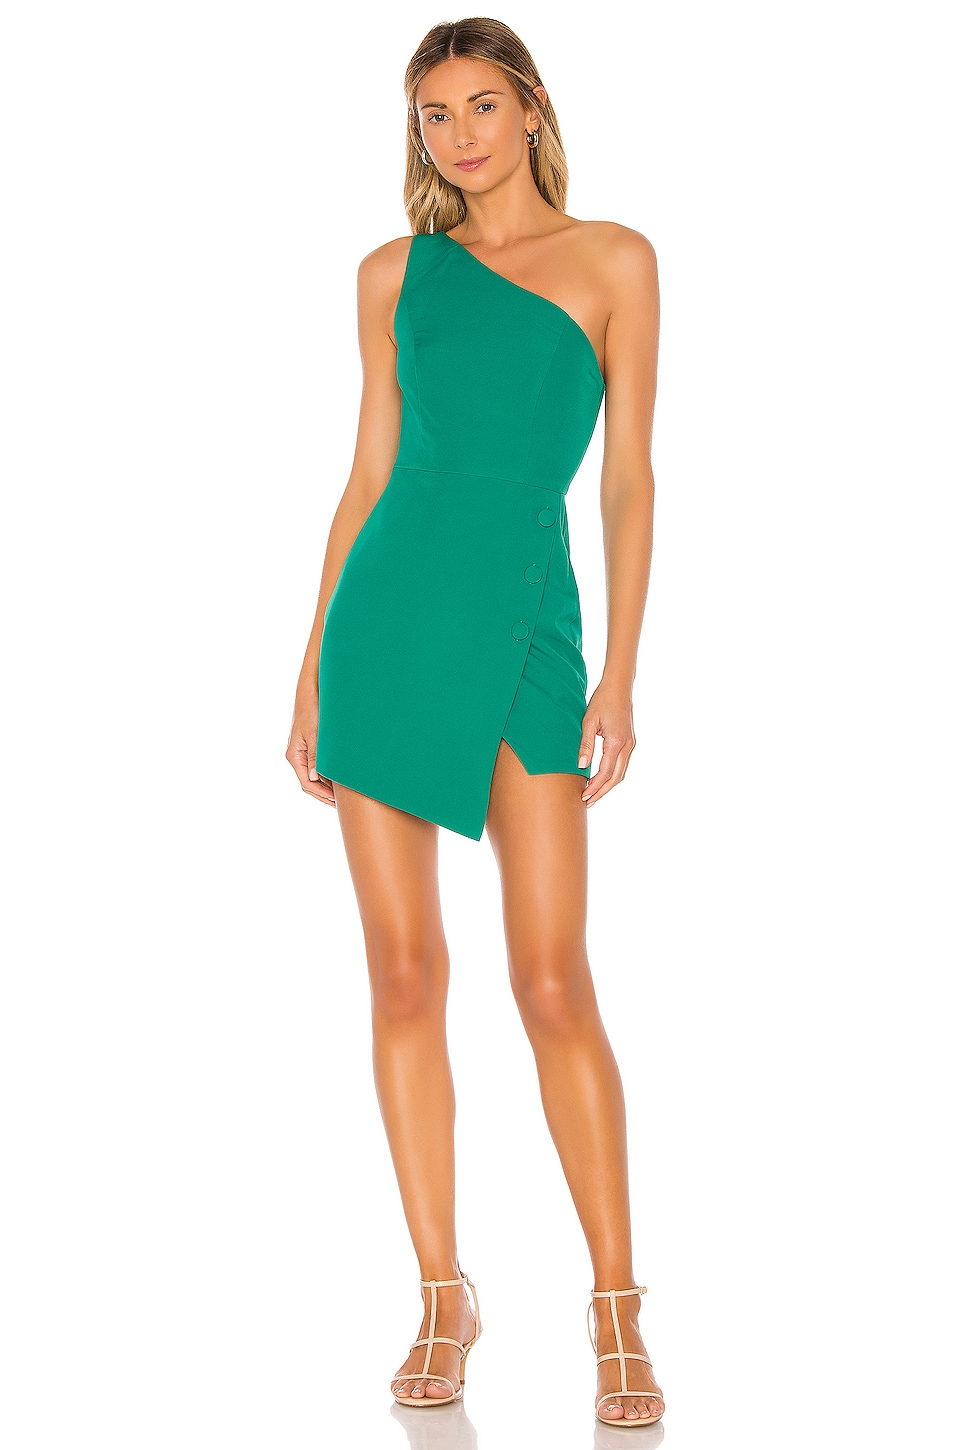 NBD Tere Mini Dress in Kelly Green